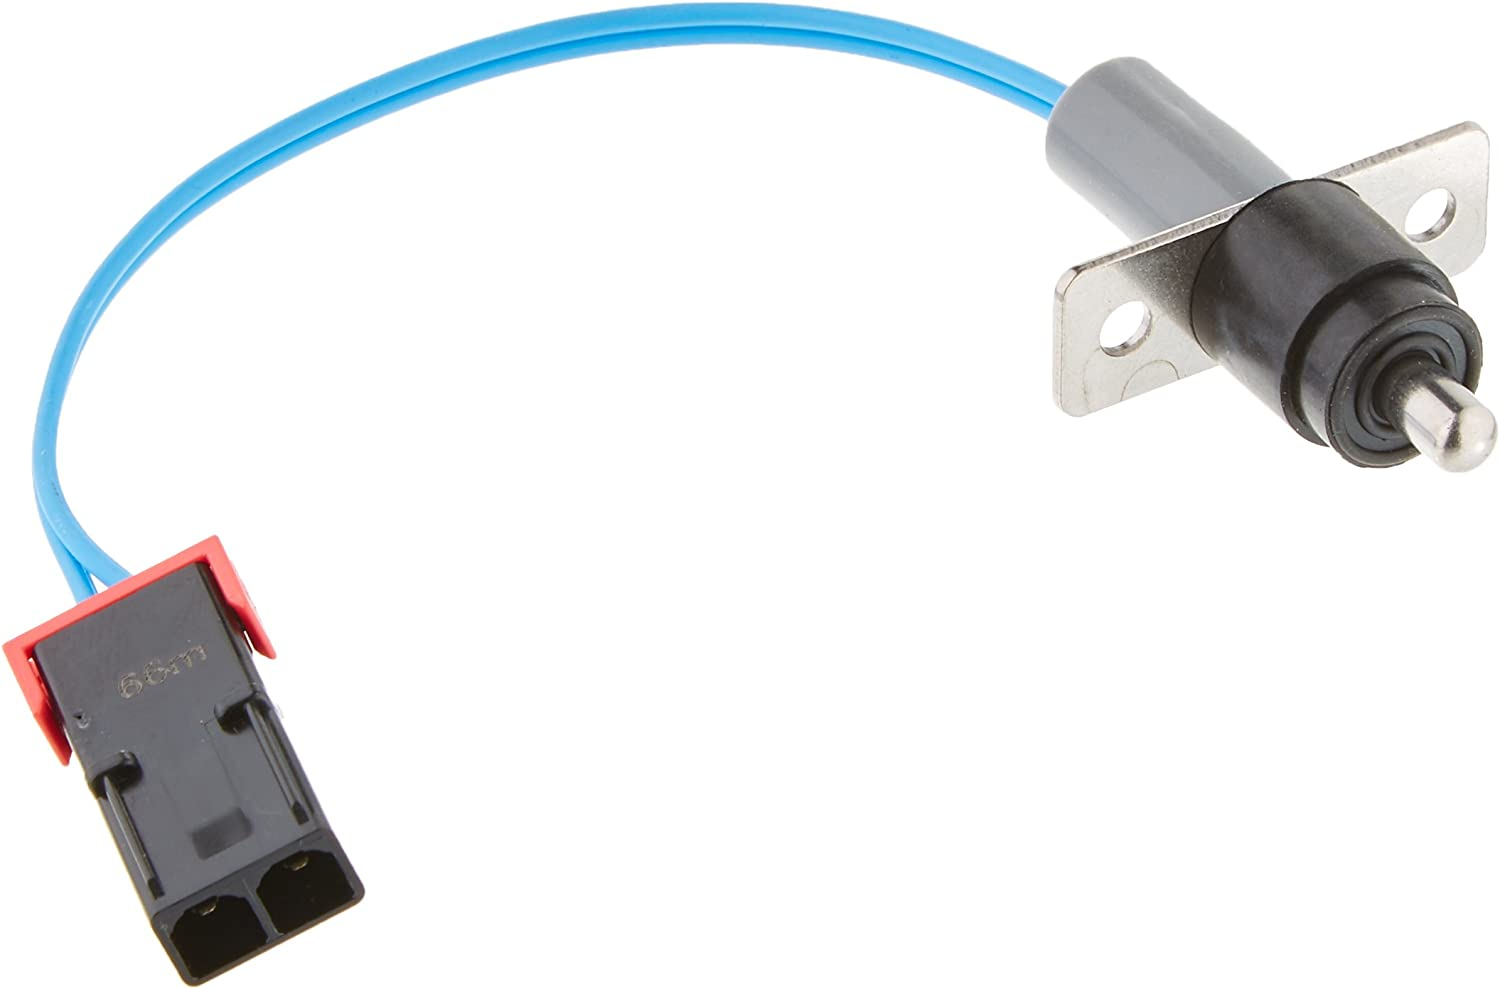 ERP DC90-10128N Washer Thermistor, Replaces Samsung DC90-10128N, Blue, Pack of 1